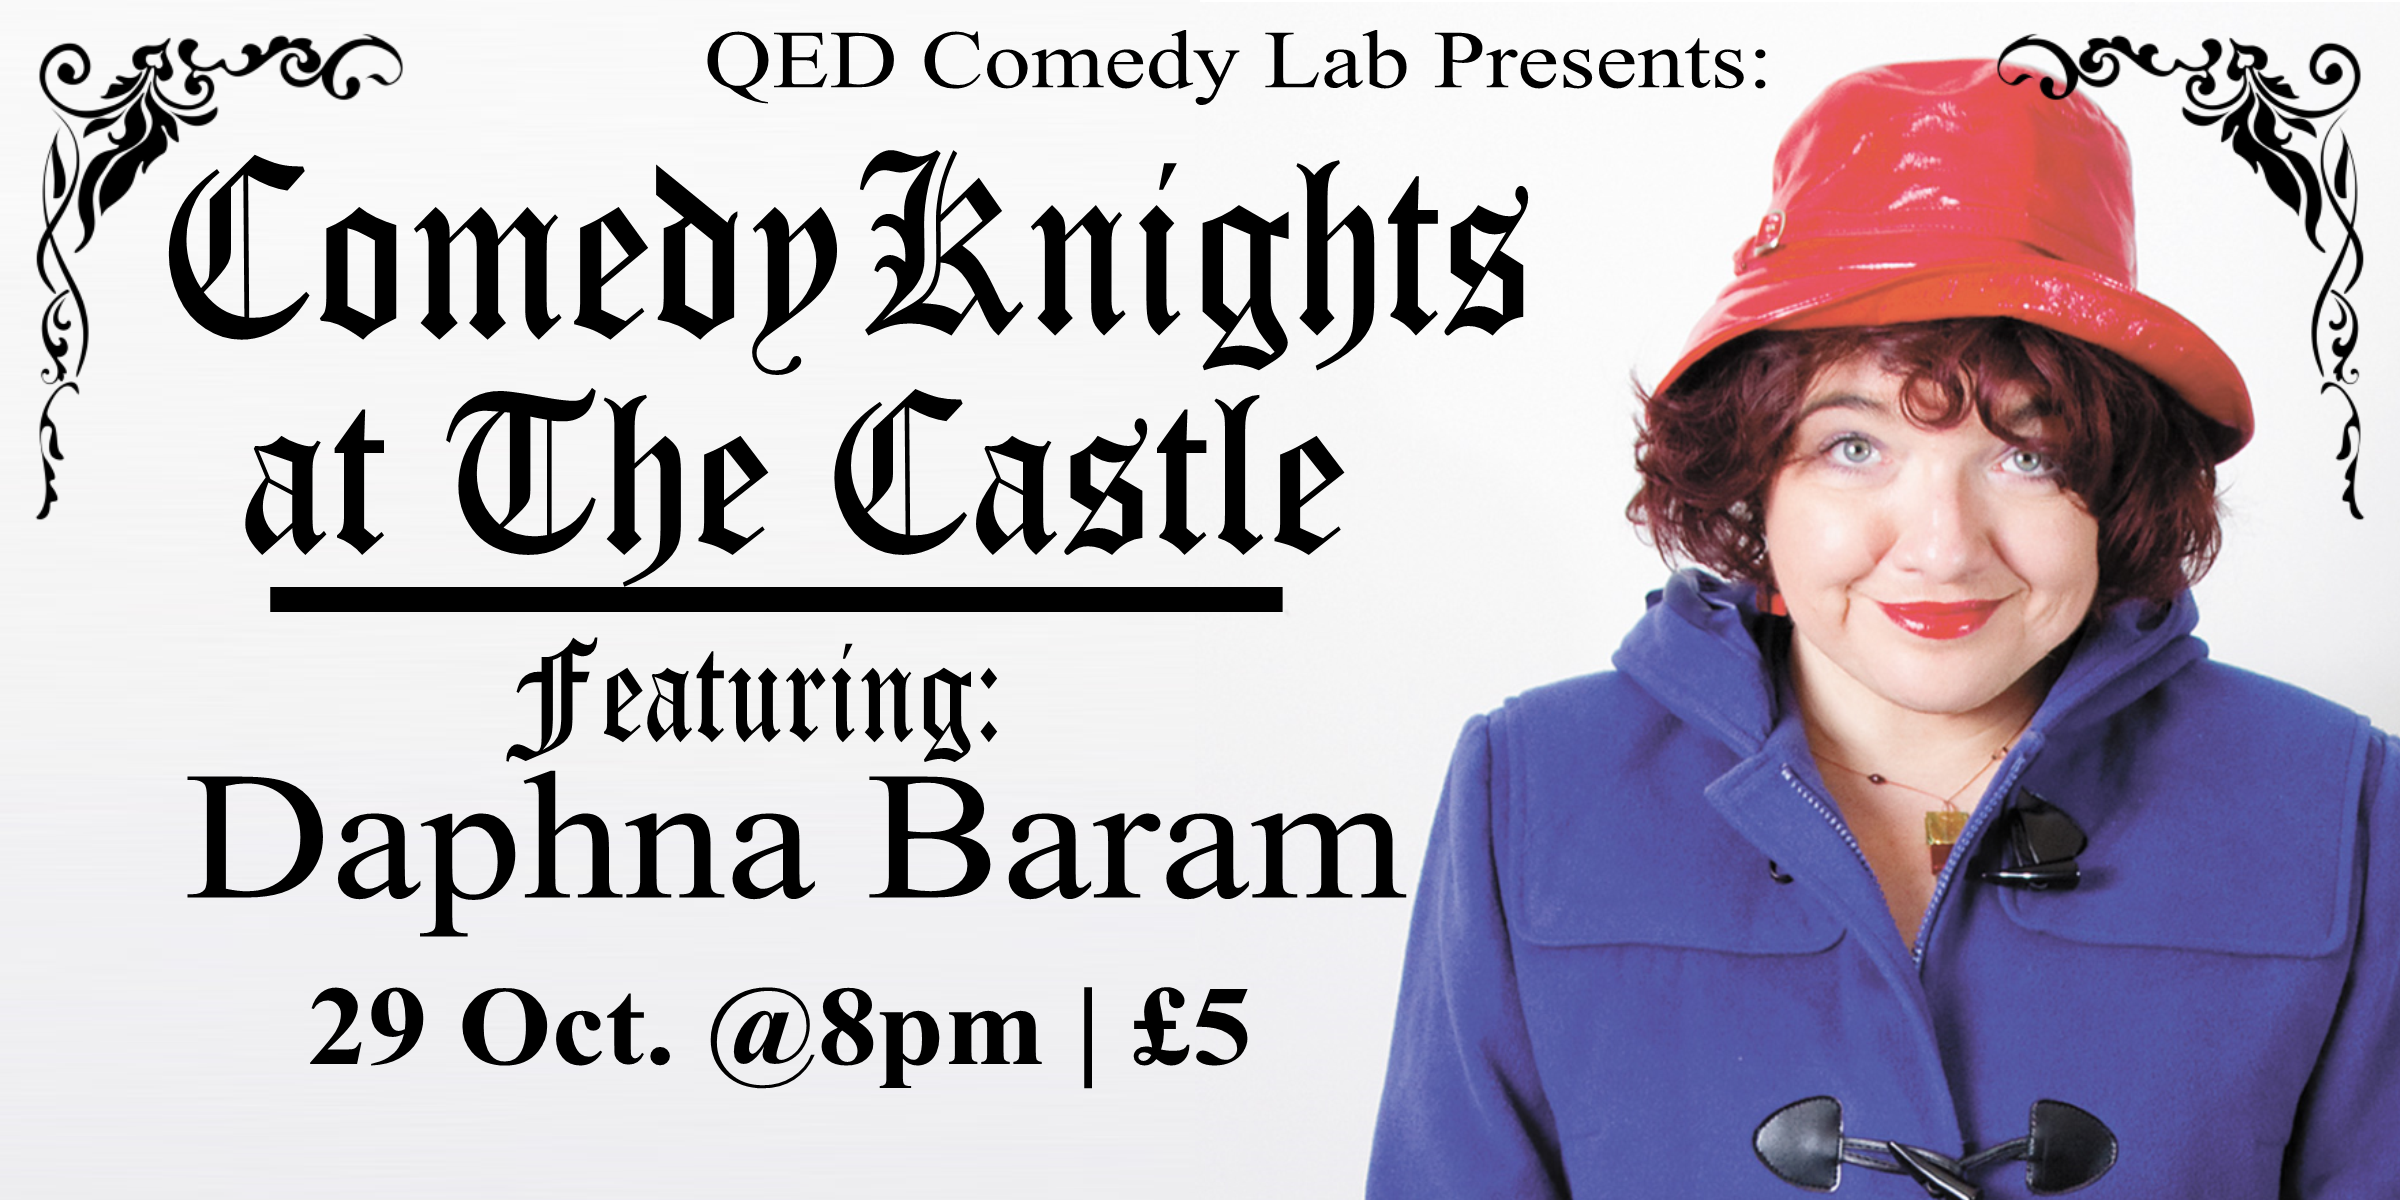 "On a quest for the funniest evening in Oxford? Here it is! Join us at the newly renovated Castle Tavern for Comedy Knights, a monthly stand-up showcase that features some of the finest local and national comedians around - but instead of the high comedy club price tag, it's just £5. This month we have a special guest headliner Daphna Baram!  Daphna is a London based, Israeli-born stand up comedian. With background in human rights law and Journalism (Ha'aretz, The Guardian, BBC, AlJazeera, New Statesman, The Independent), she has been performing stand up comedy since 2010 in various clubs in the UK and Europe. Among others: The Stand Edinburgh, Glasgow and Newcastle, Yes Bar Glasgow, Beehive Edinburgh, Breakneck Aberdeen, Hampstead Comedy Club London, Gags on the Green Peterborough; Stand Up on the Strand in Kent, Wine Gums in Cambridge; The International, Dublin.  Personally political comedy. 'An extremely sharp, caustic sense of humour and a very wicked streak.' Despite all appearances to the contrary, Baram is ""that"" friend, who whispers bad ideas into your ear and has you constantly exclaiming ""I can't believe you said that!""   Also featuring four other great comedians from all over the UK and hosted by Matt Chadourne  Doors at 7:30/Show at 8:00pm £5   Get Your Tickets Here!"